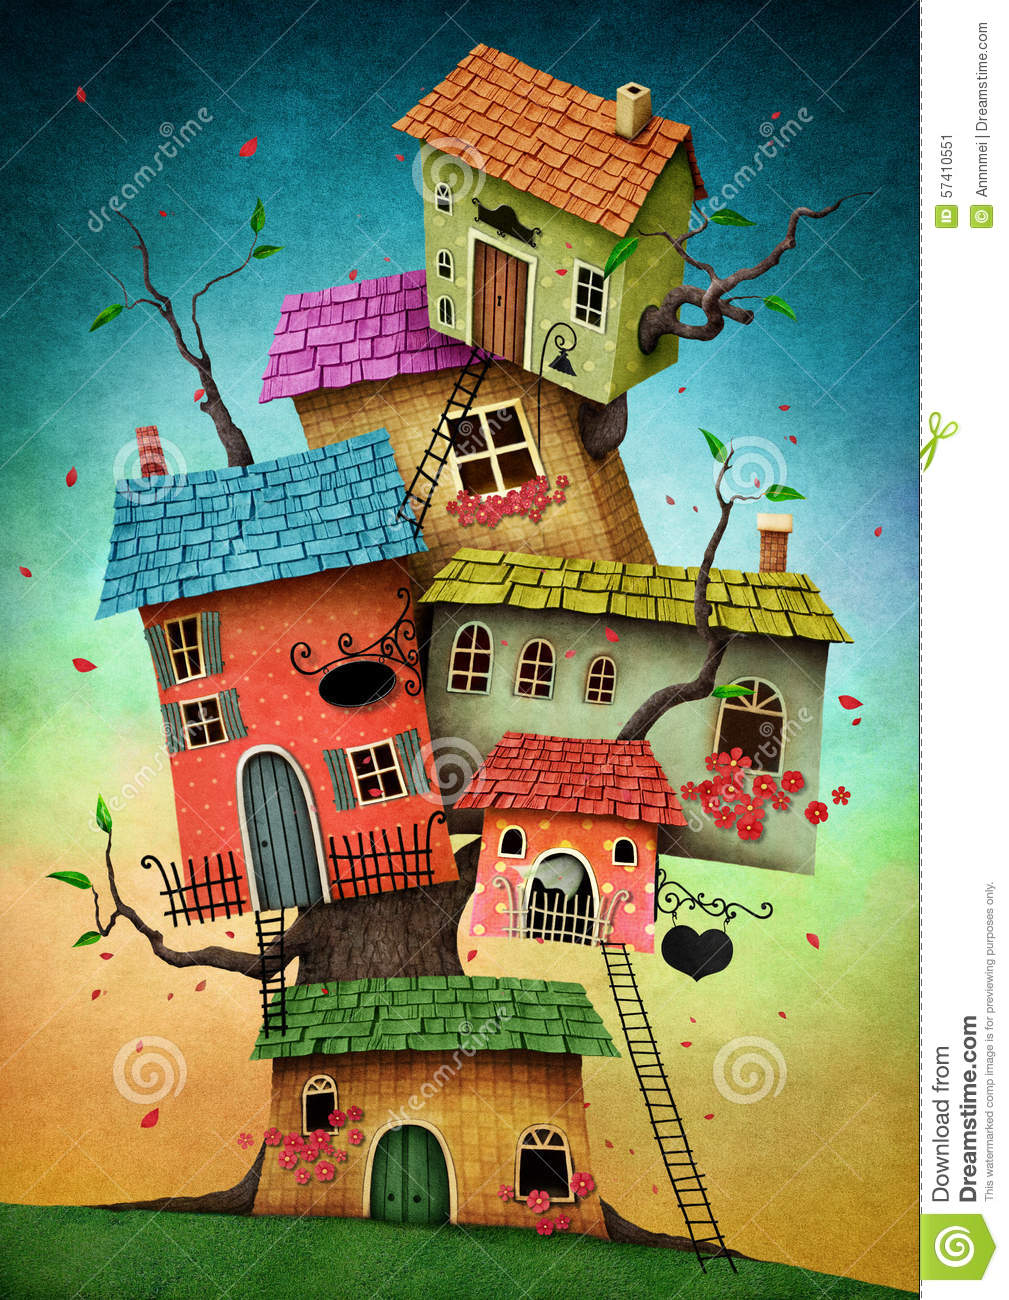 Book Cover Illustration Royalties : Tree houses stock illustration image